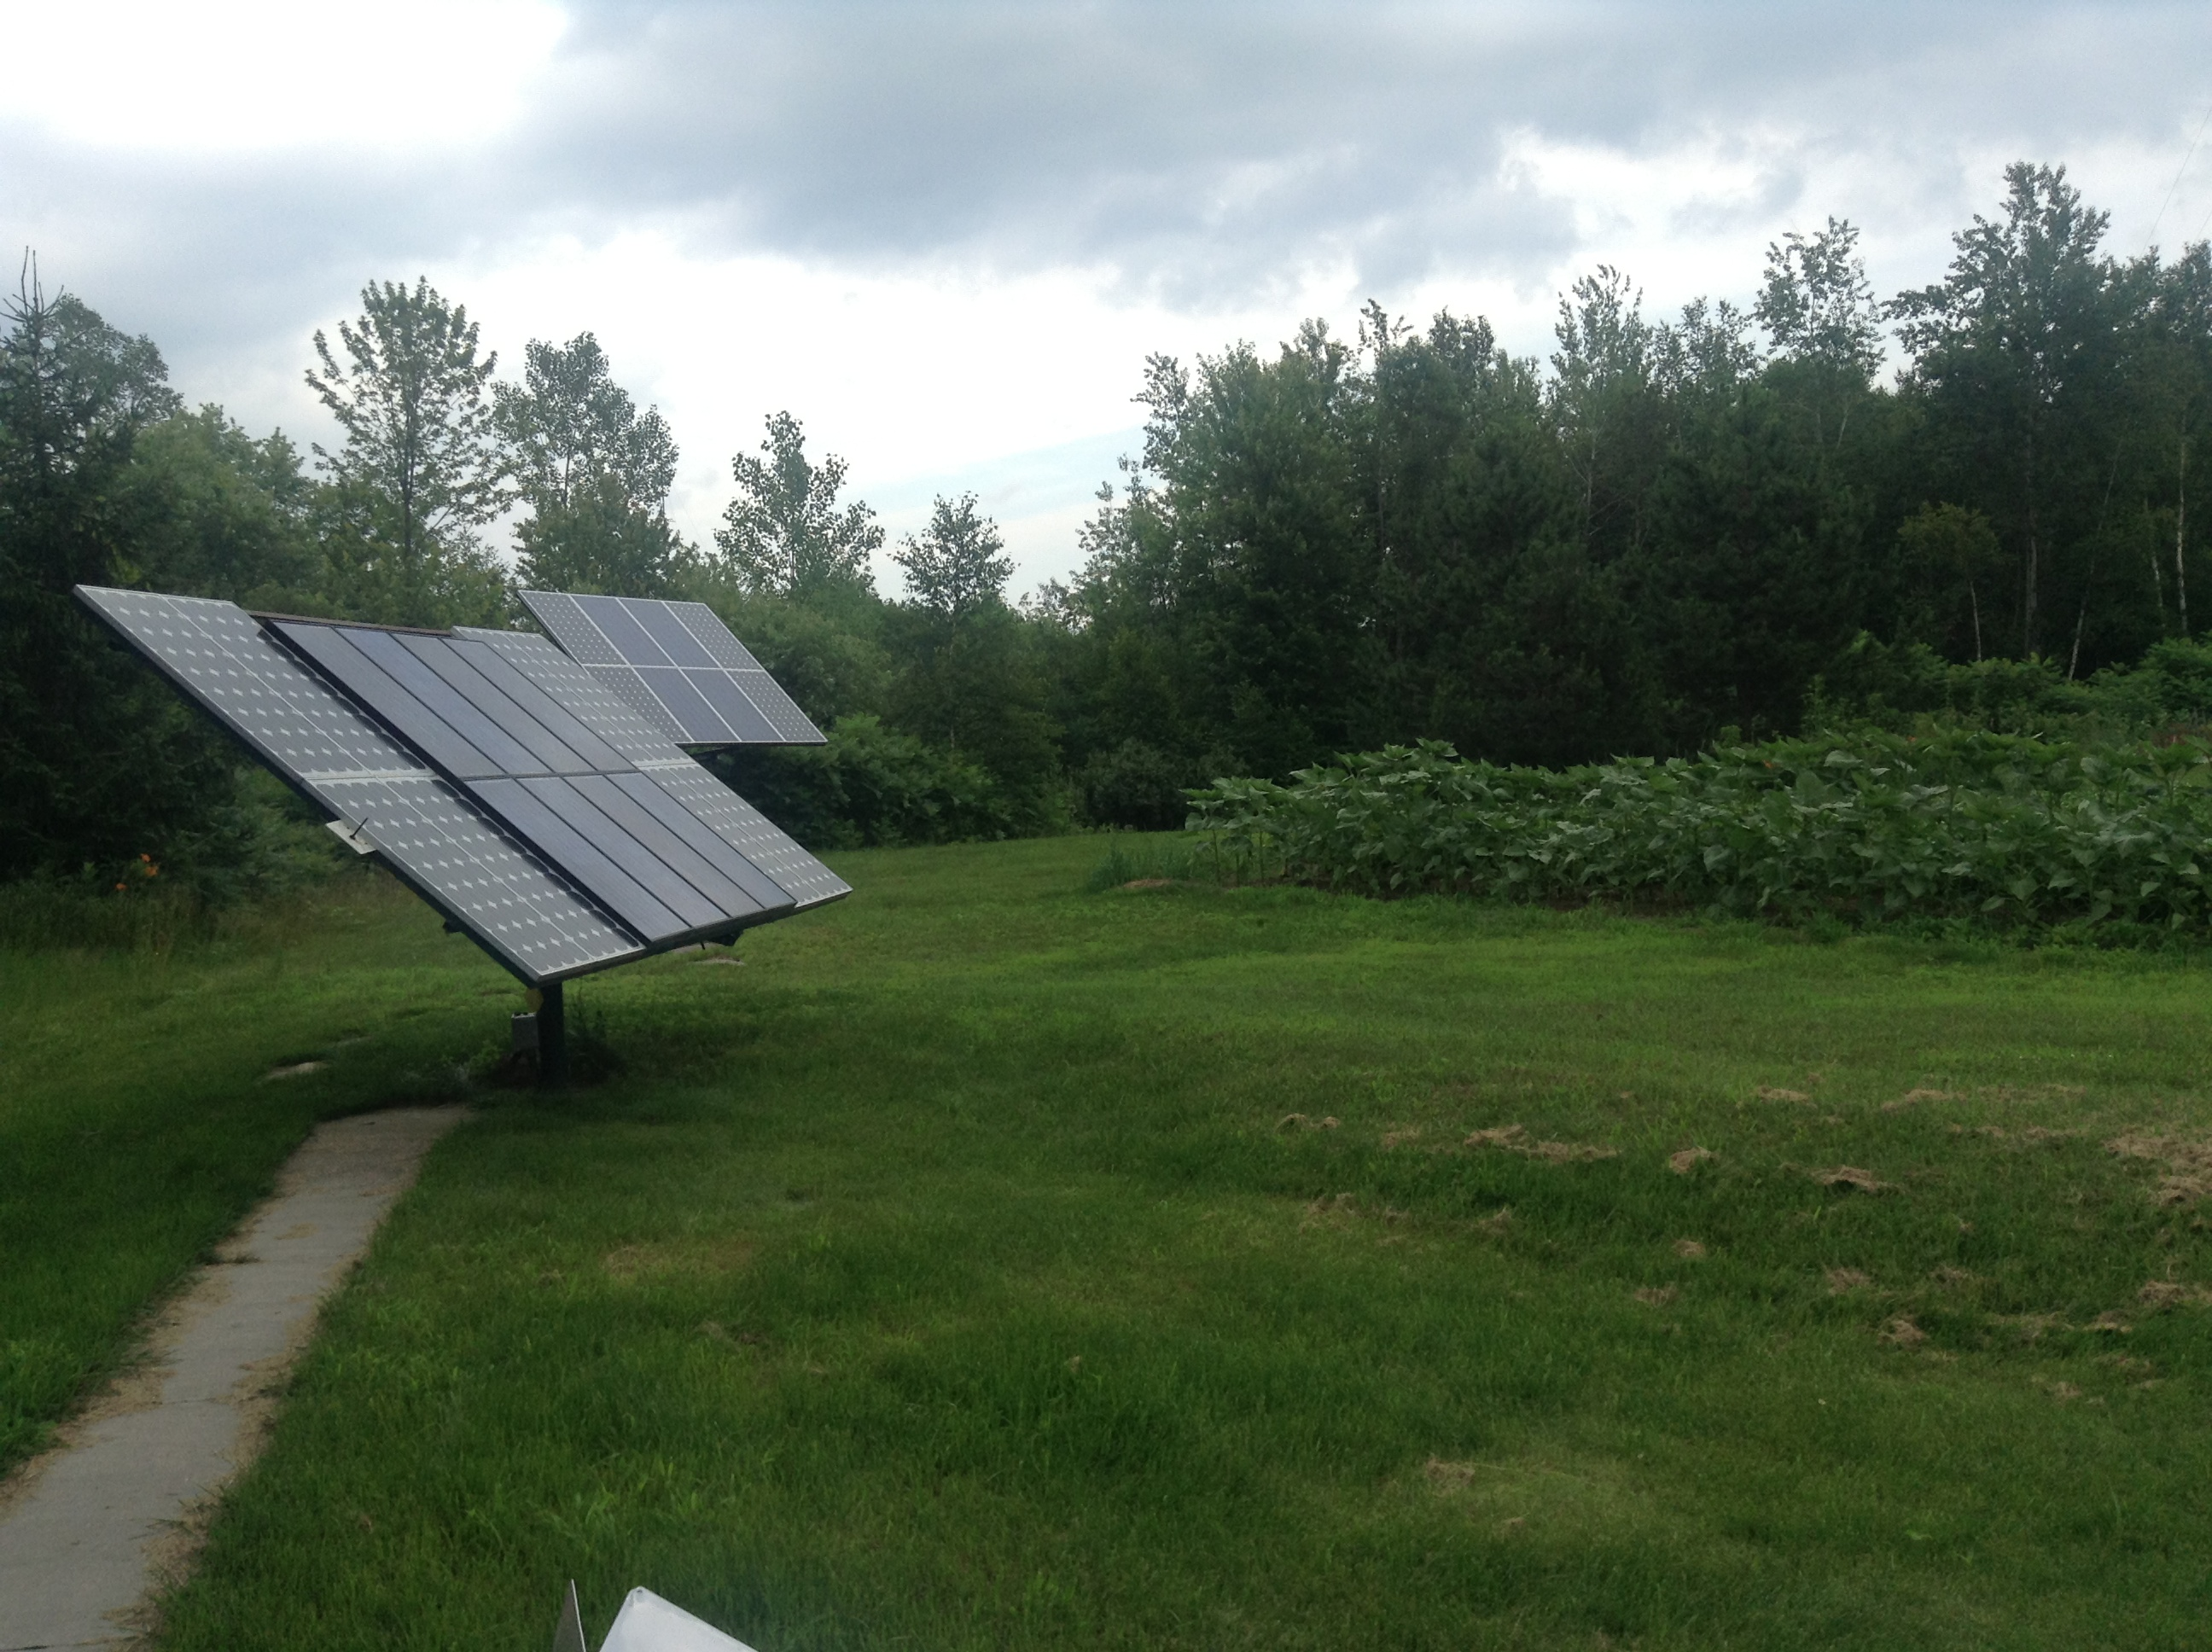 Solar panels on an off-the-grid farm